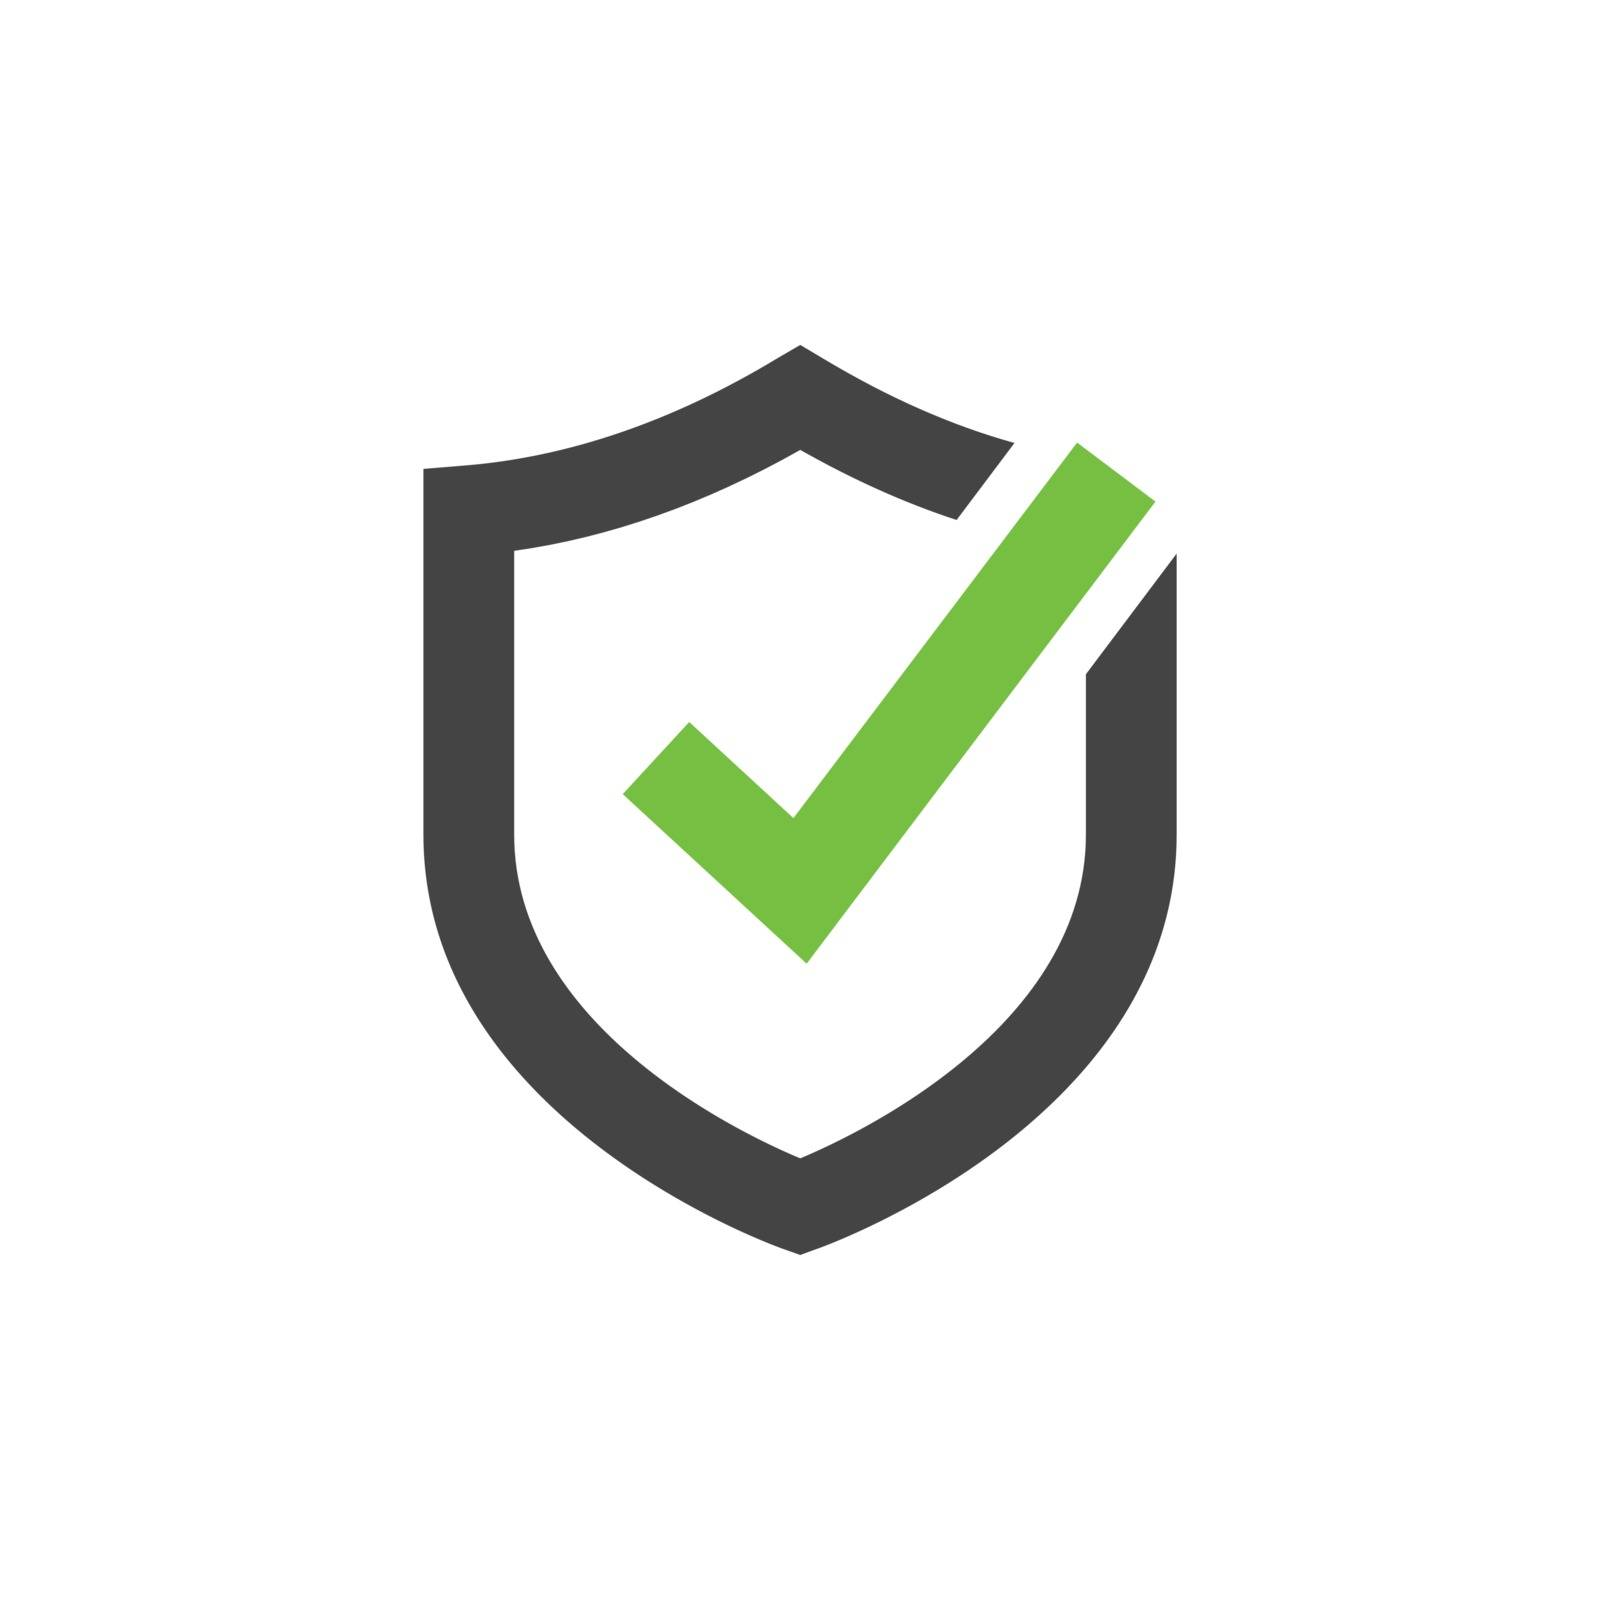 Secured, protection vector icon